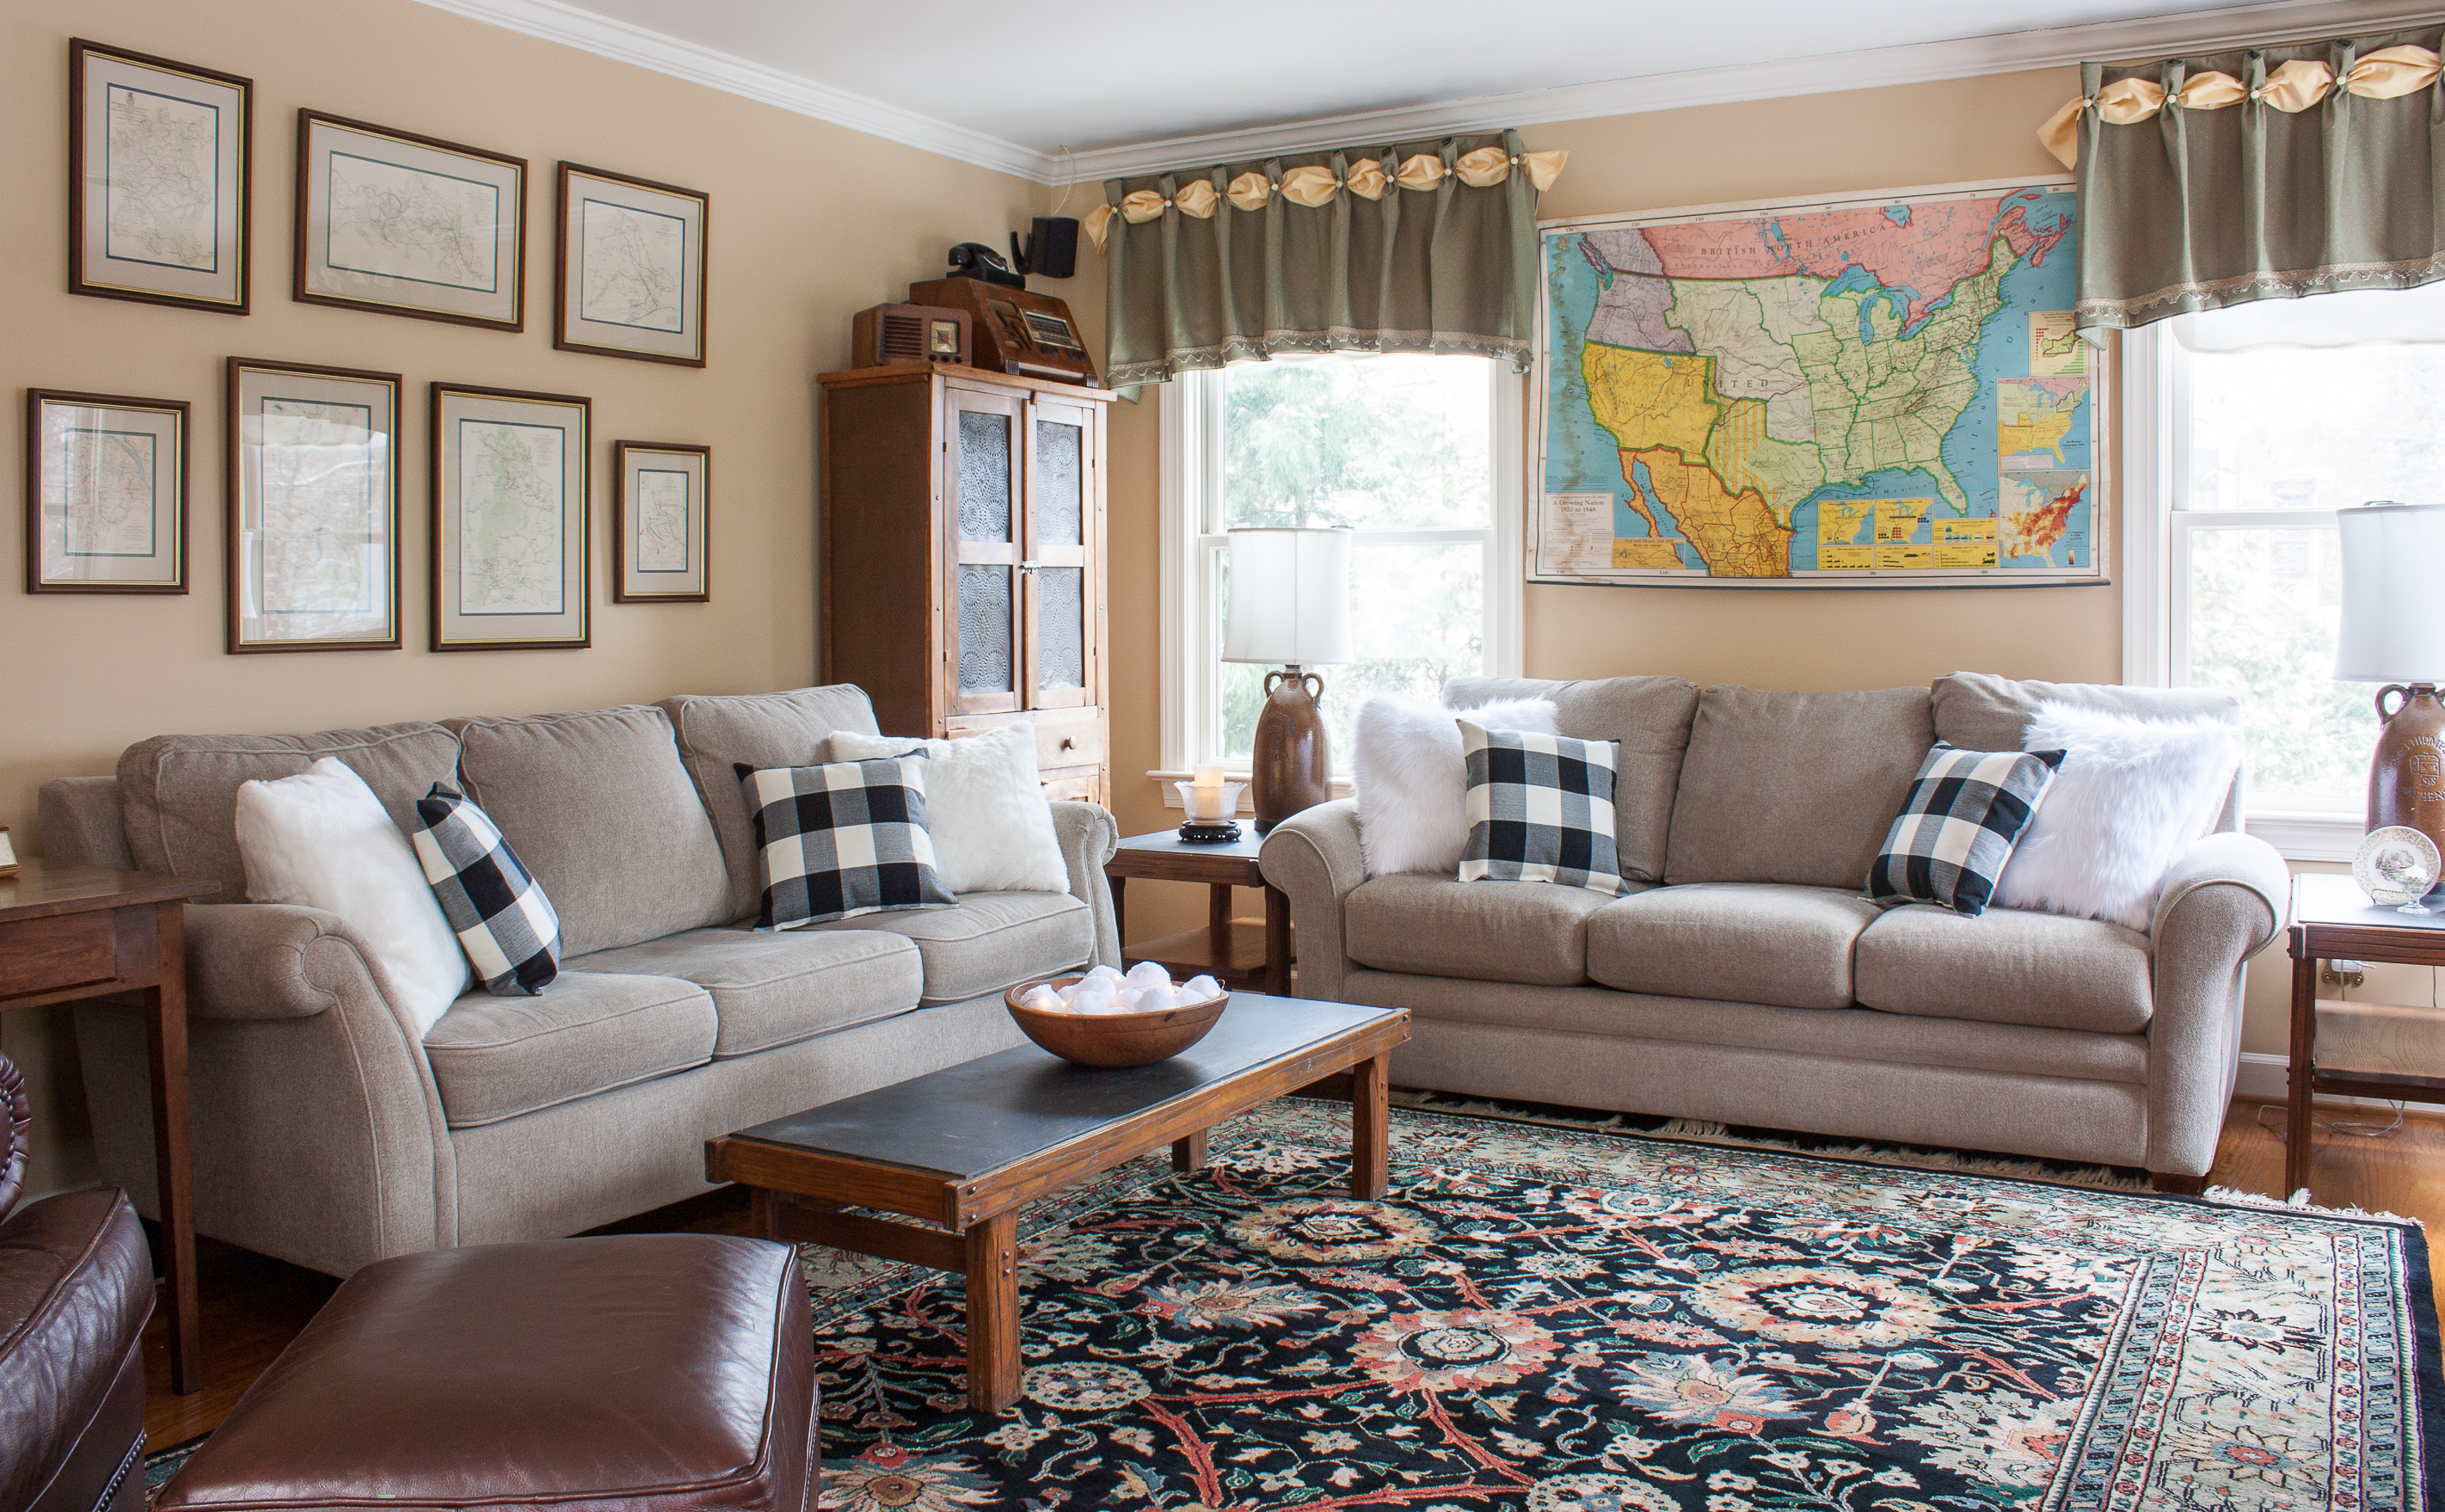 A family room is cozily decorated for winter.